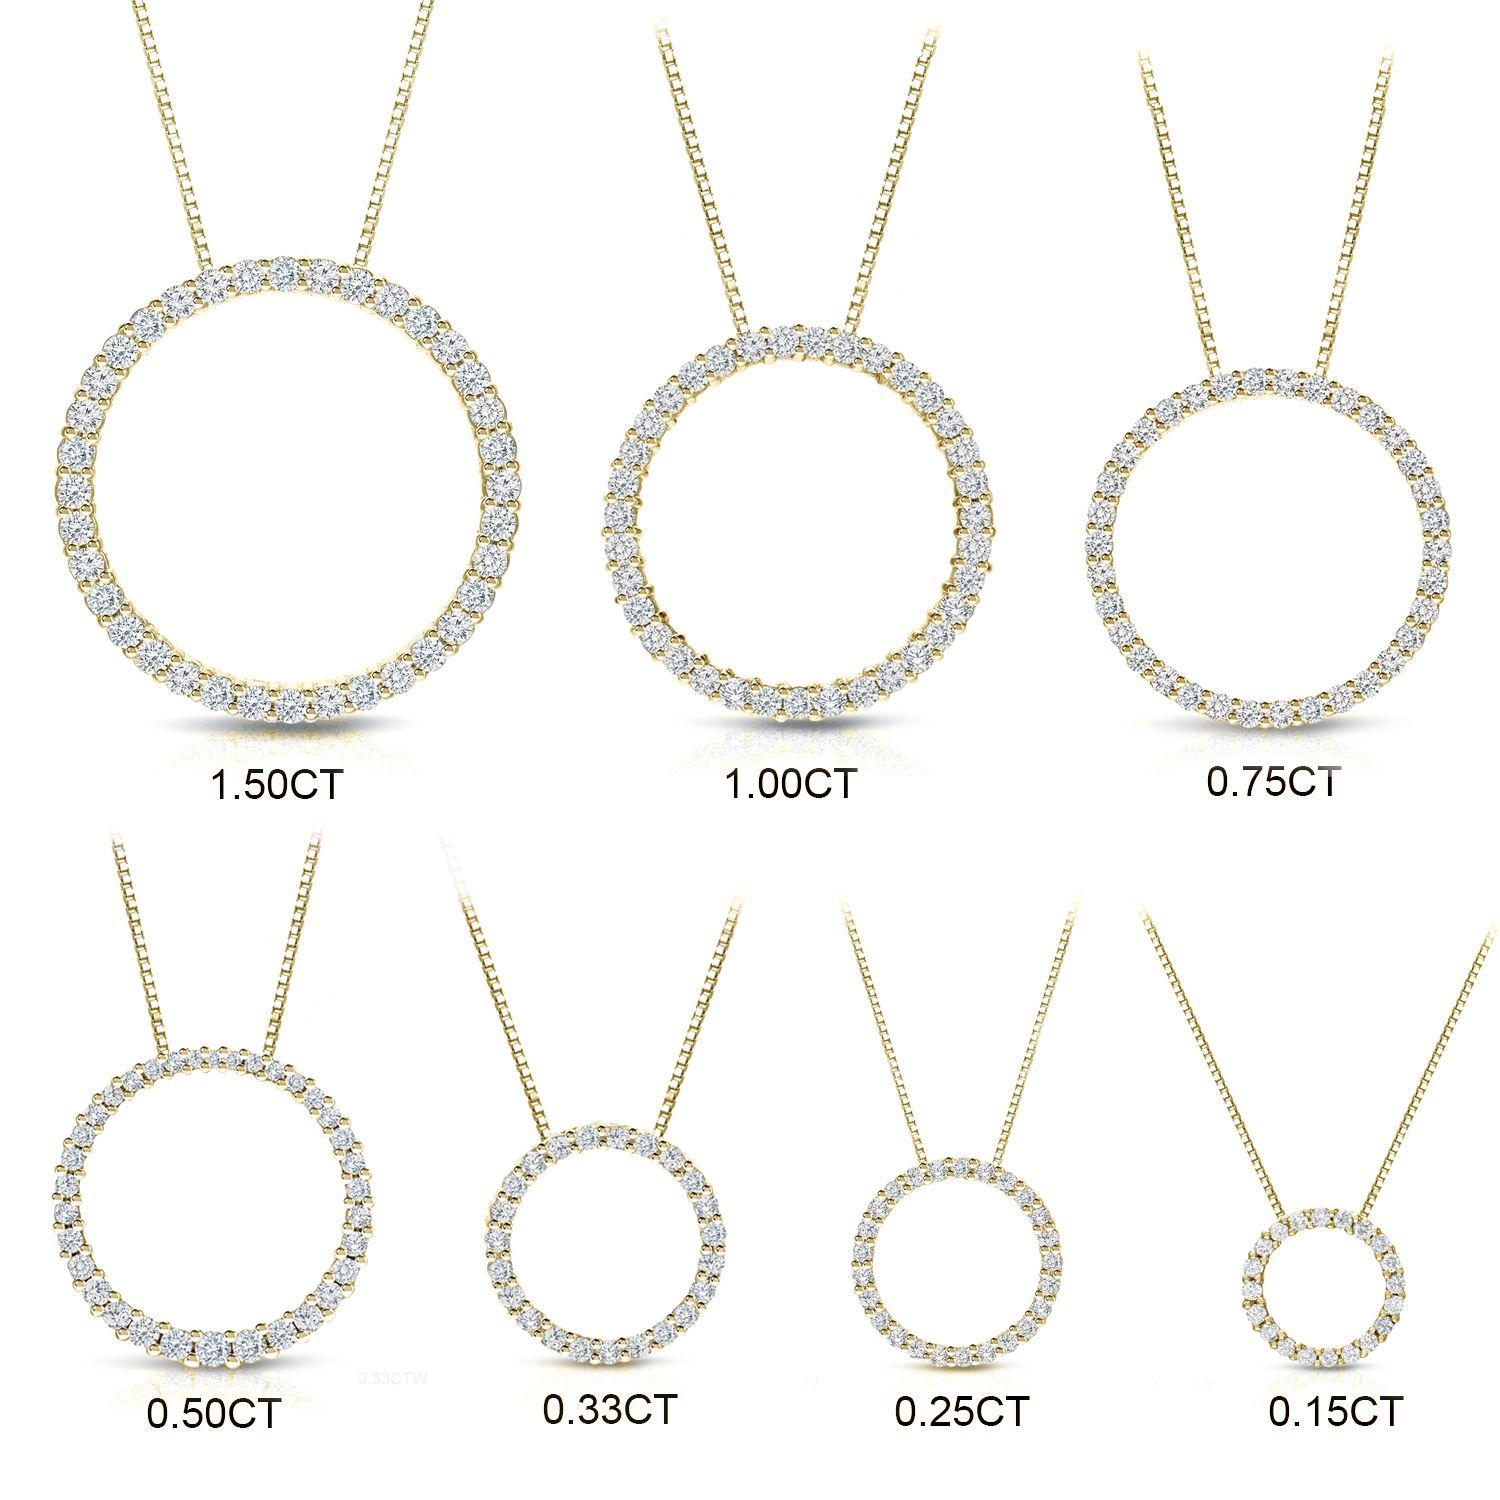 d38d9f3765 Auriya 14k Yellow Gold Diamond Circle Necklace in 2019 | Jewelry ...